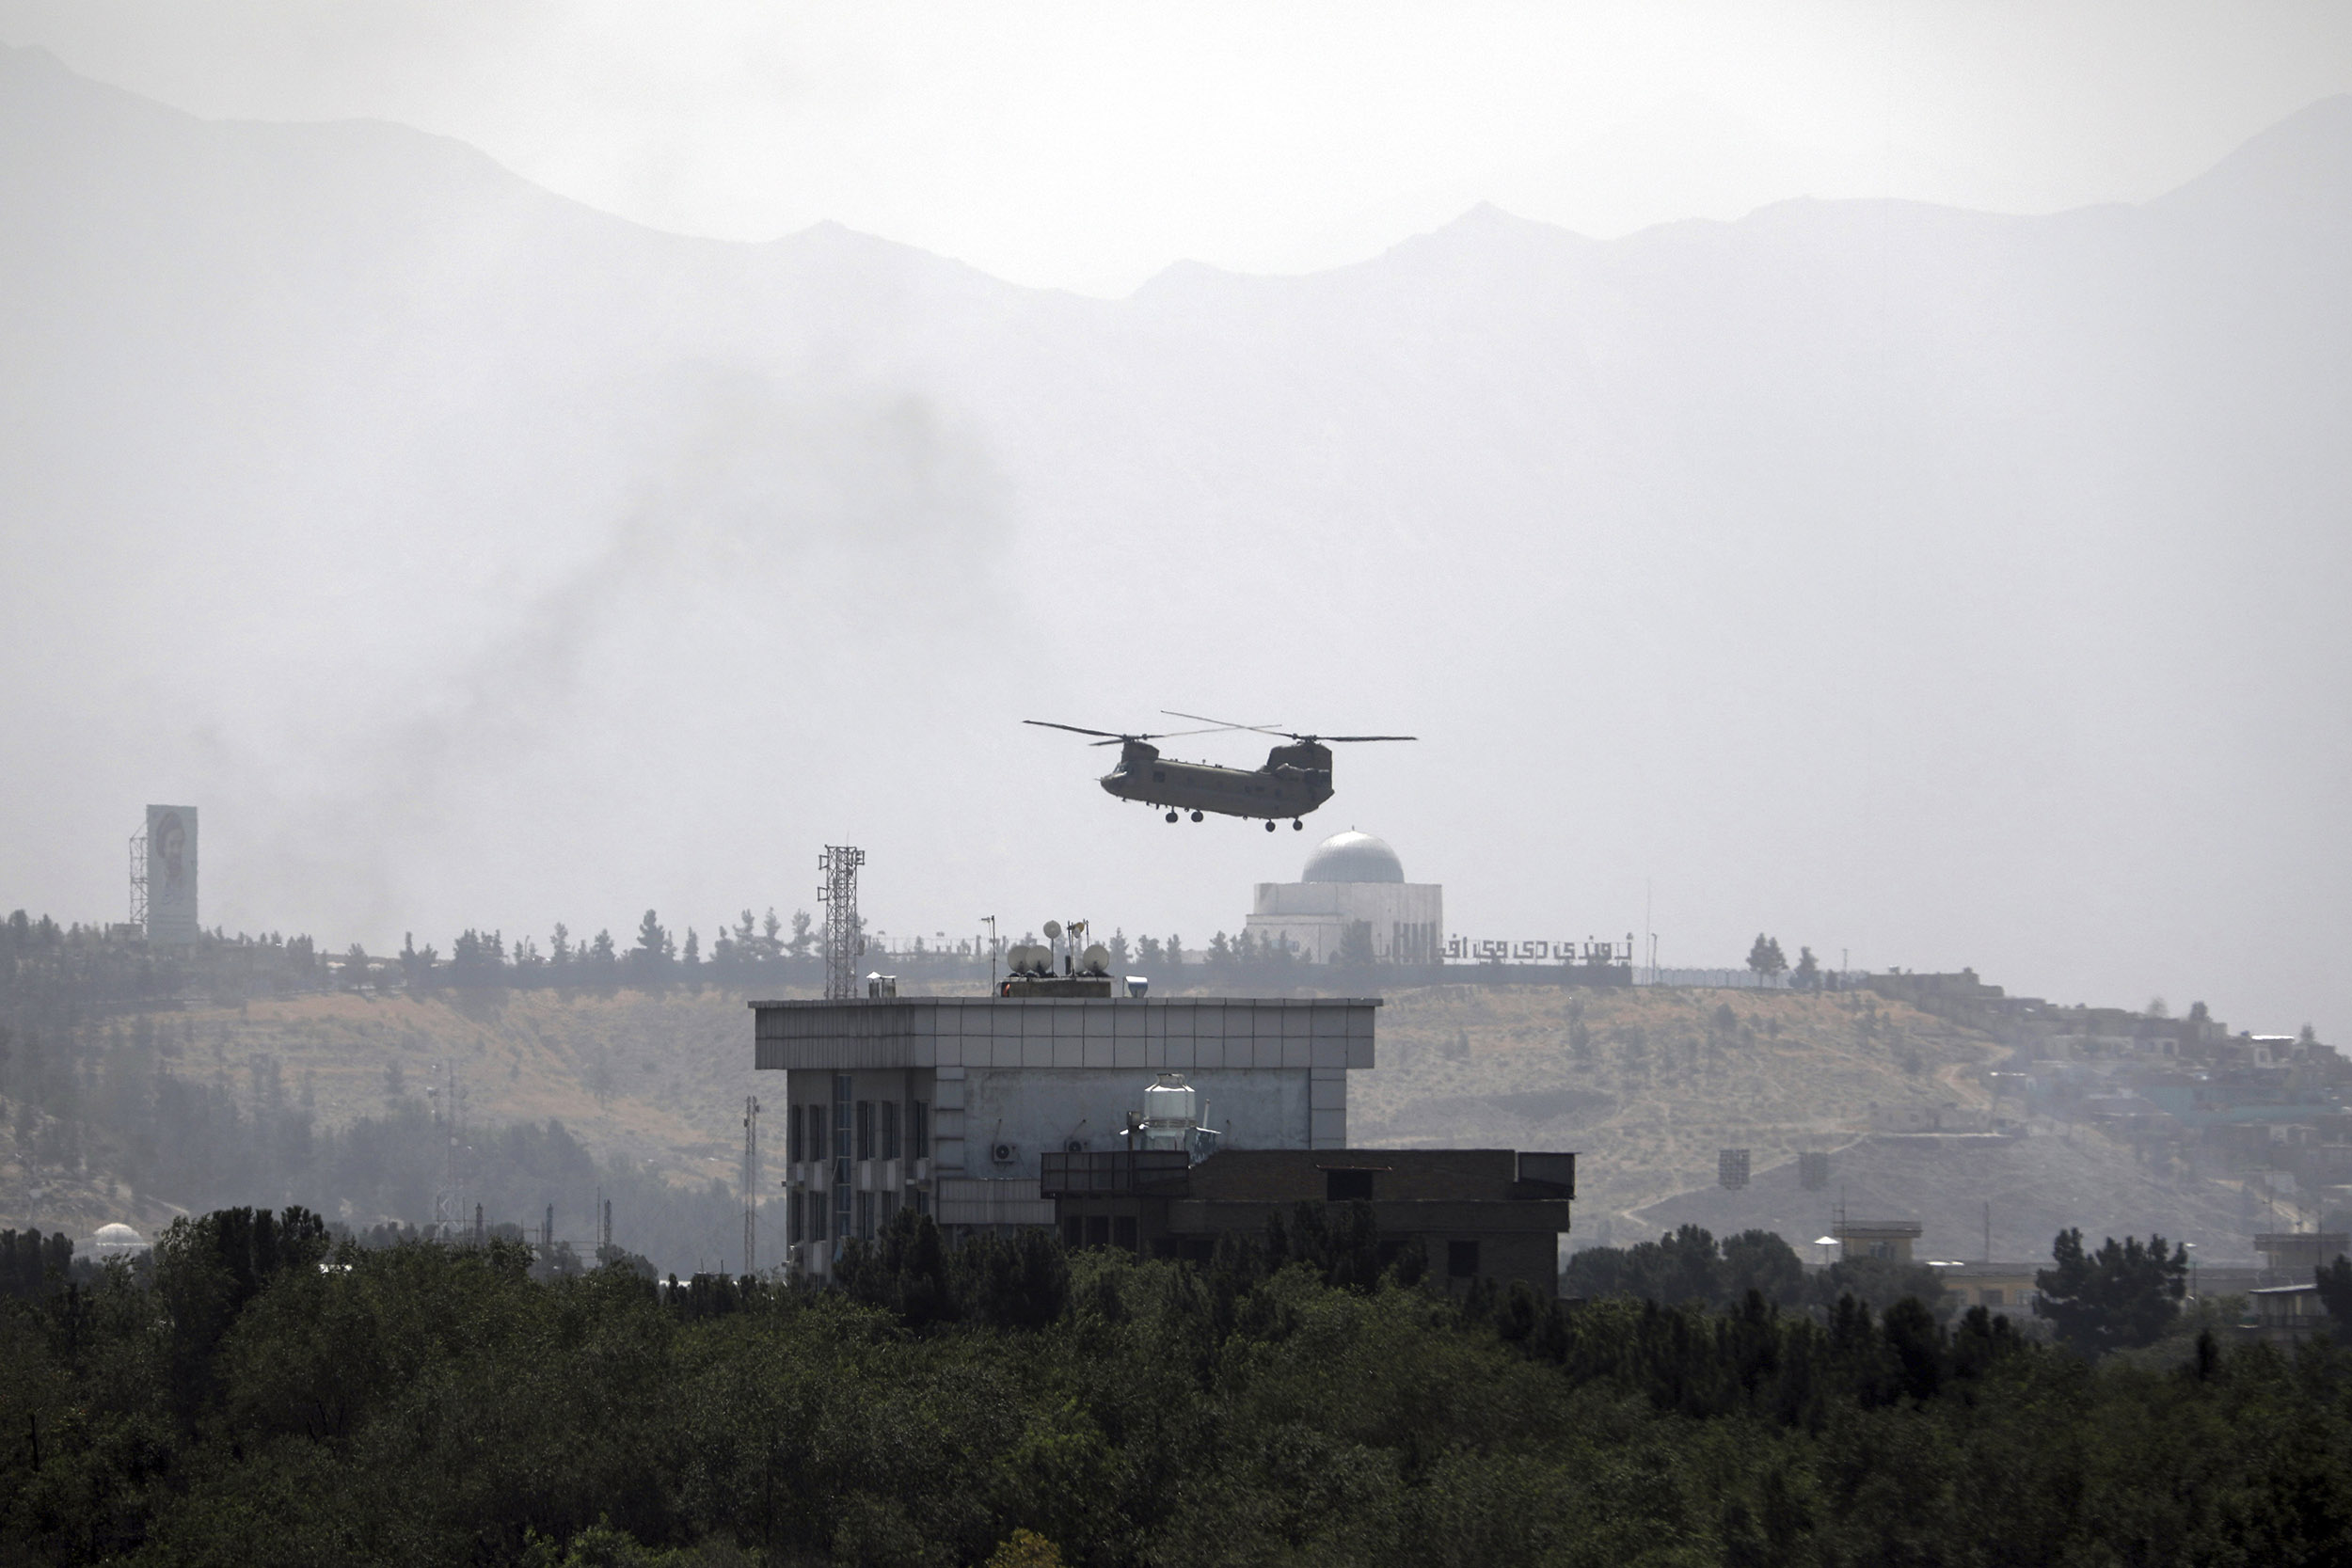 U.S. to send 1,000 more troops to Kabul after Afghan government collapses